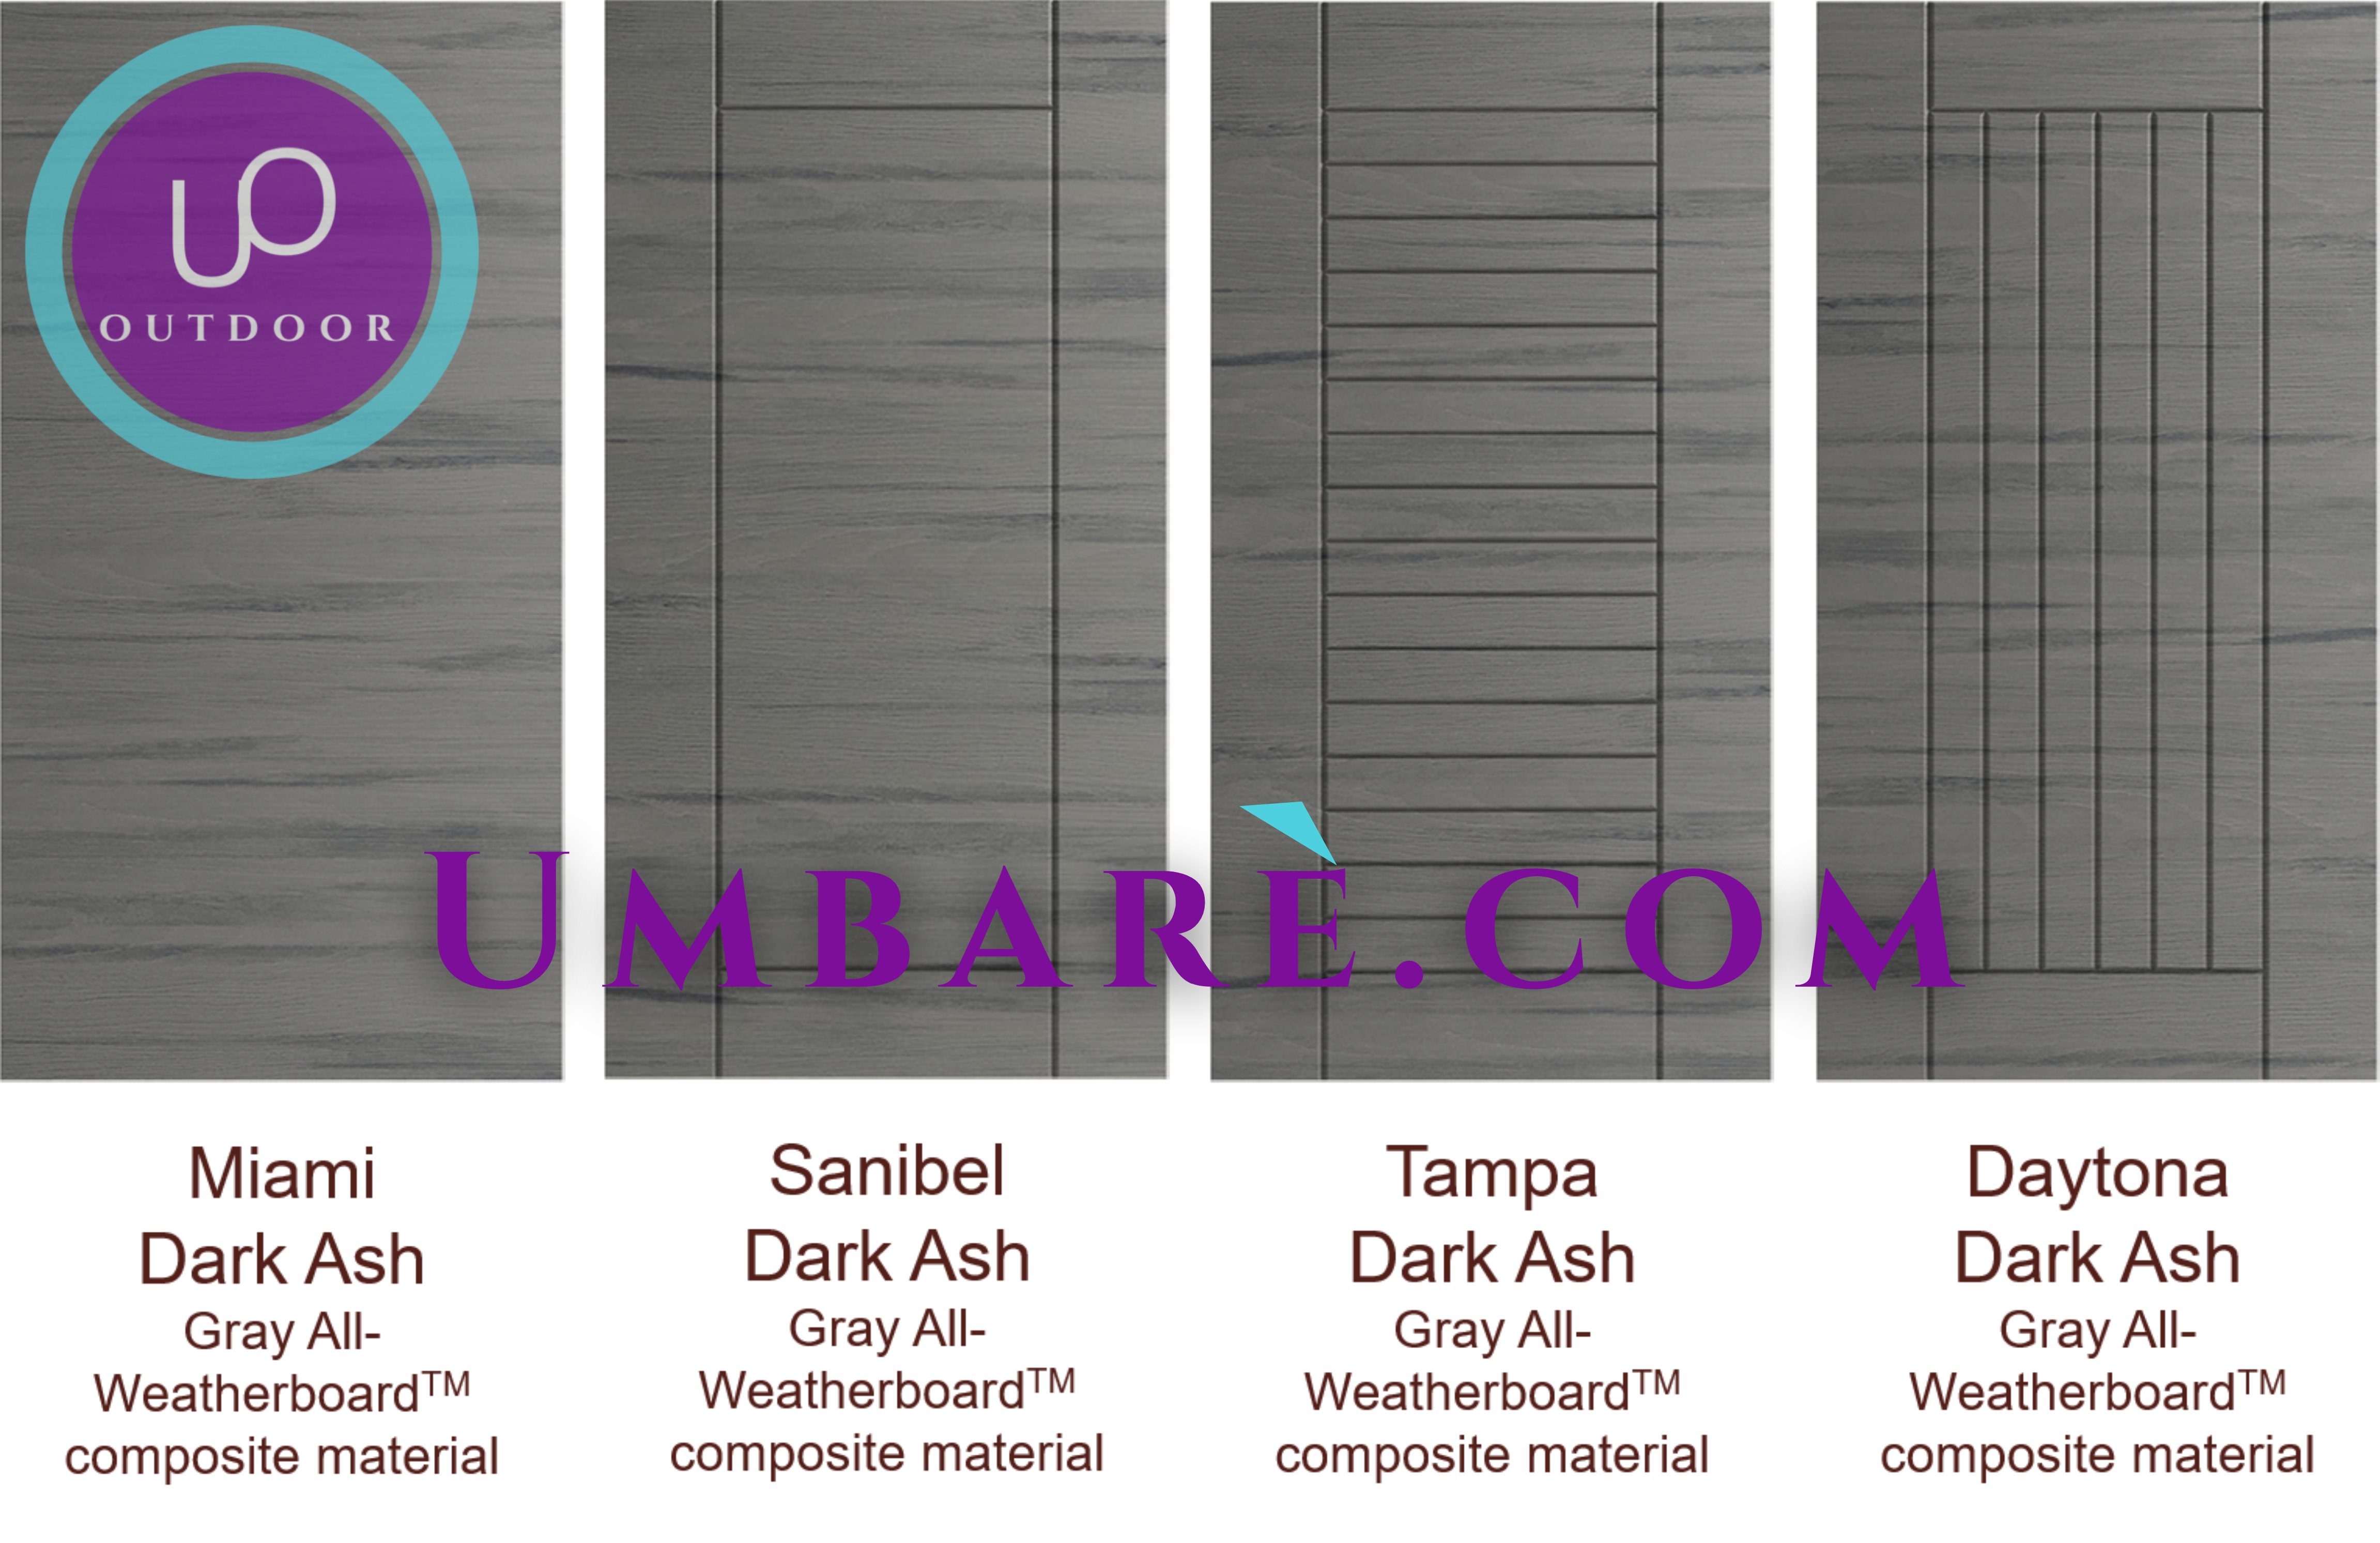 Outdoor Cabinets Ash Sarasota Outdoor Cabinets Lakewood Ranch Outdoor Cabinets Longboat Key Outdoor Cabinets Venice Outdoor Cabinets Siesta Key